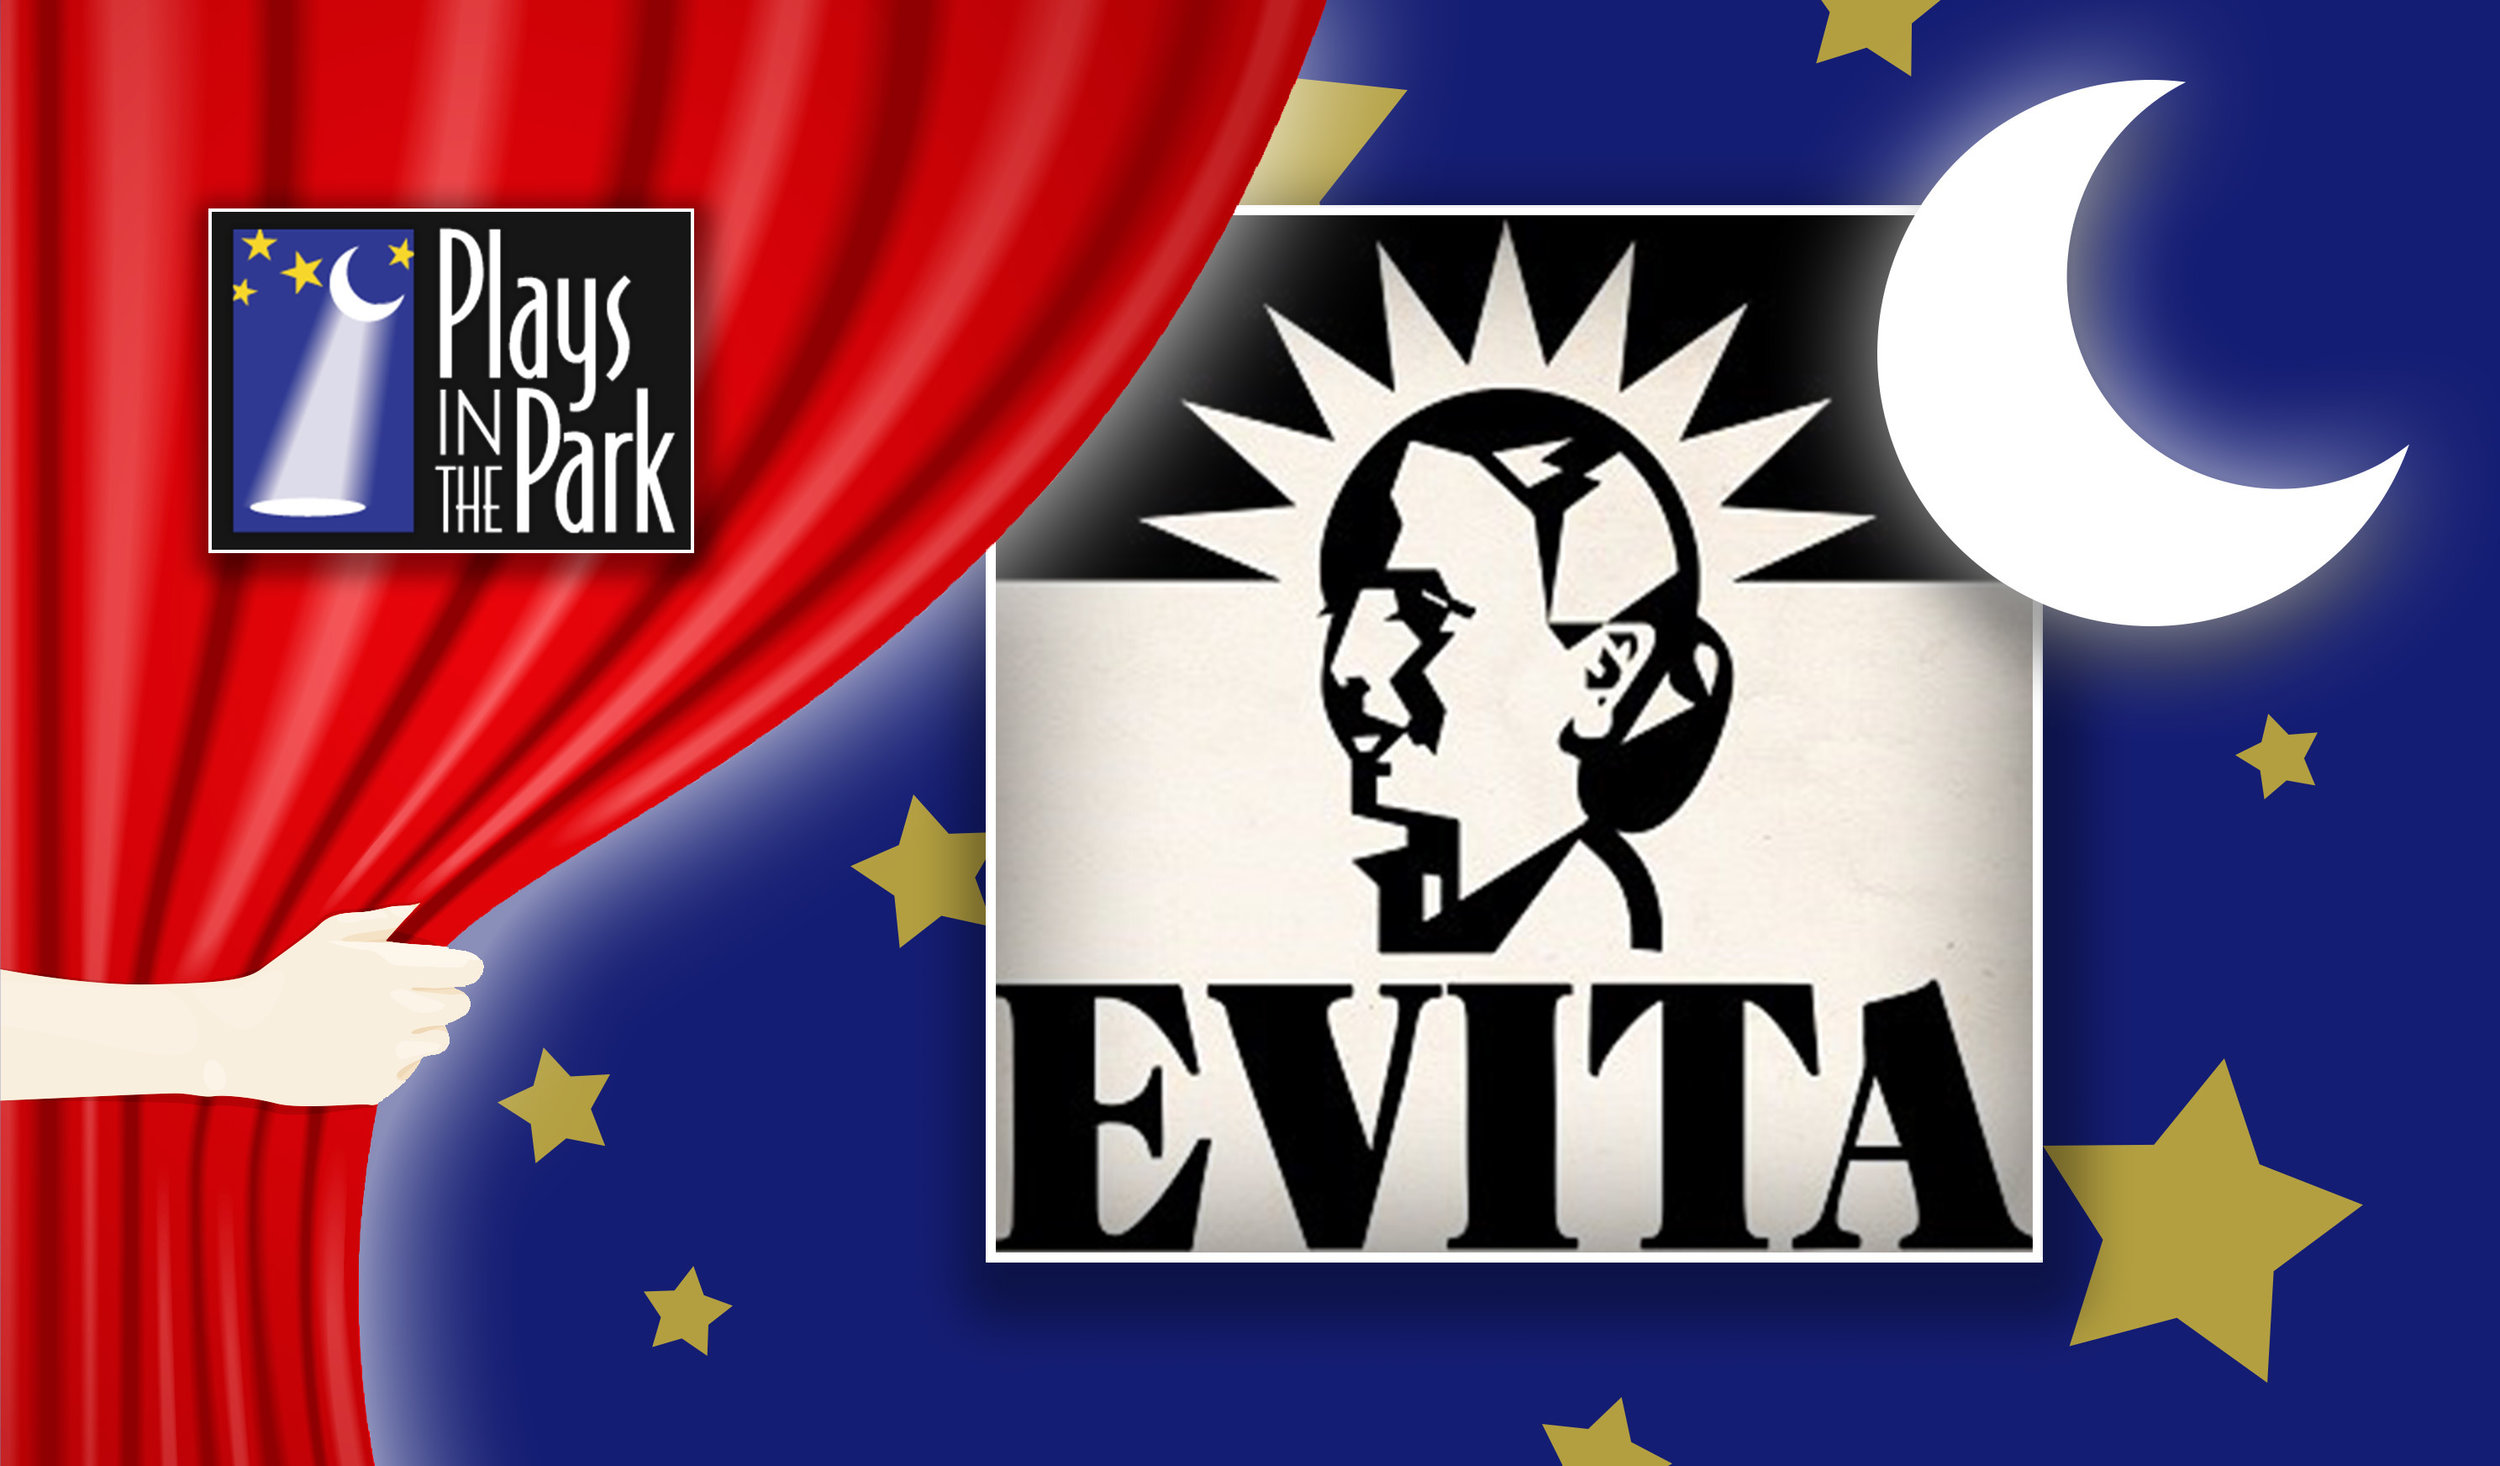 Plays in the Park - Evita.jpg